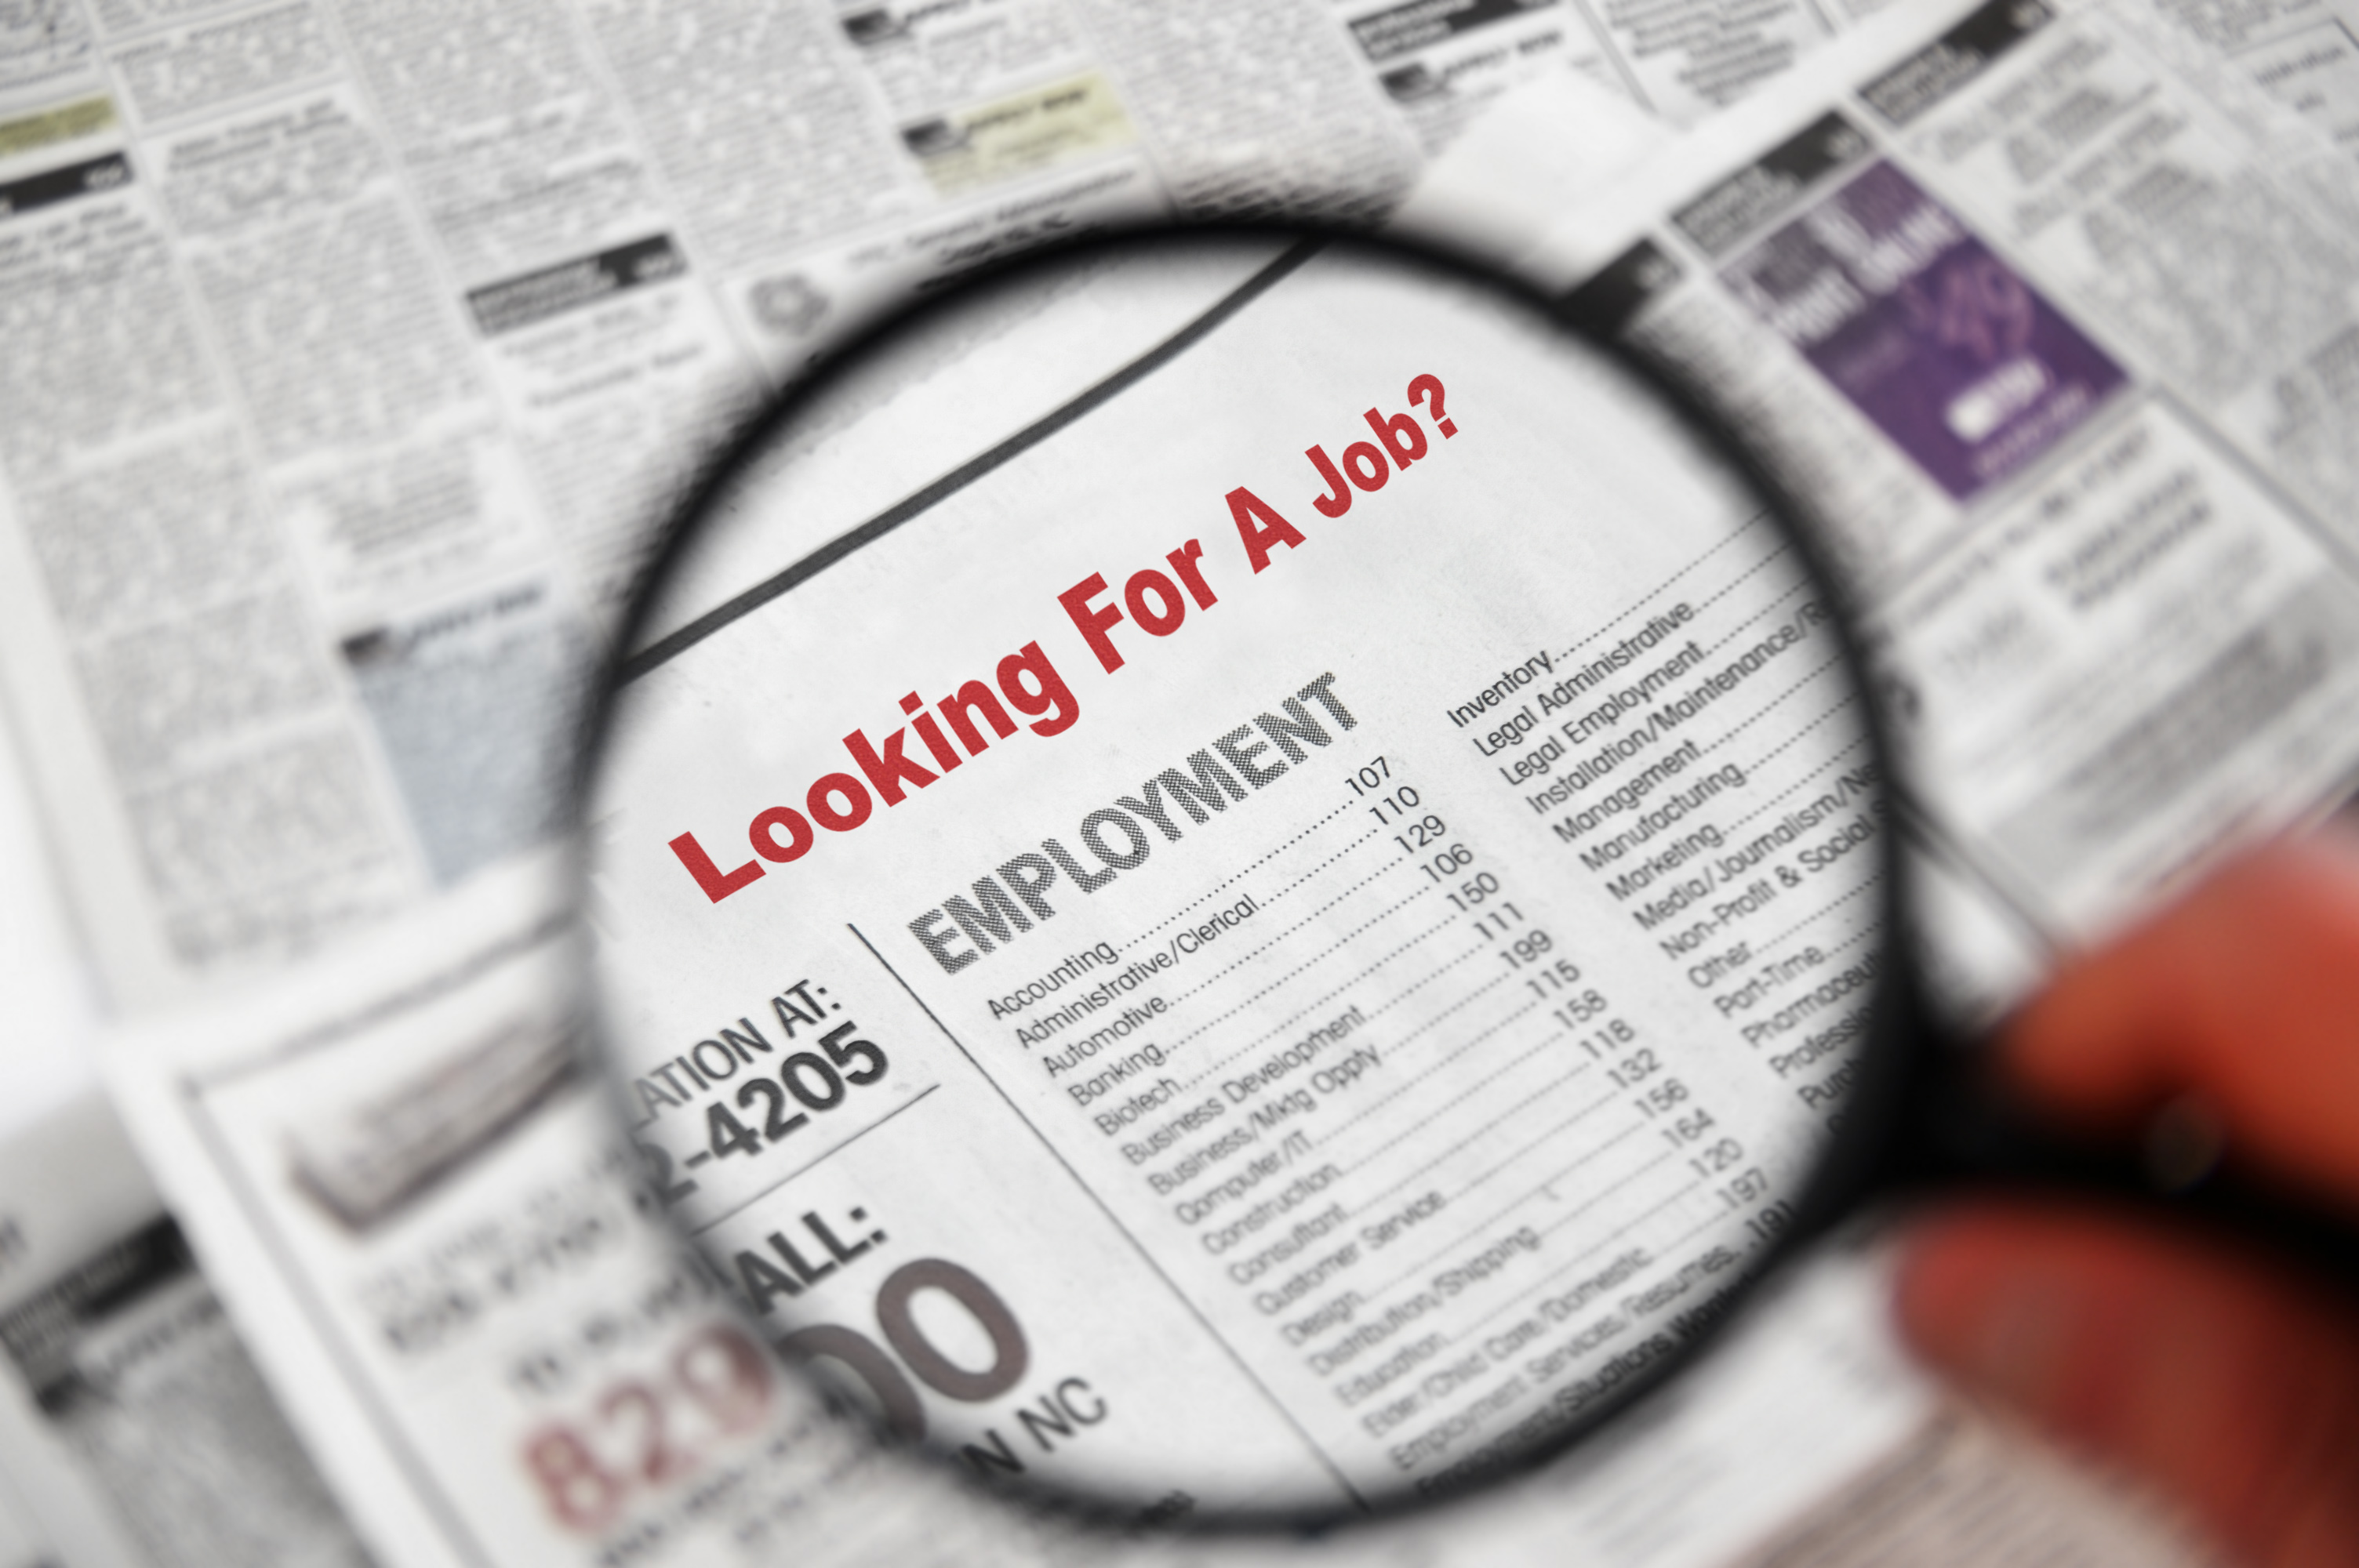 Magnifying glass looking at employment section of newspaper.